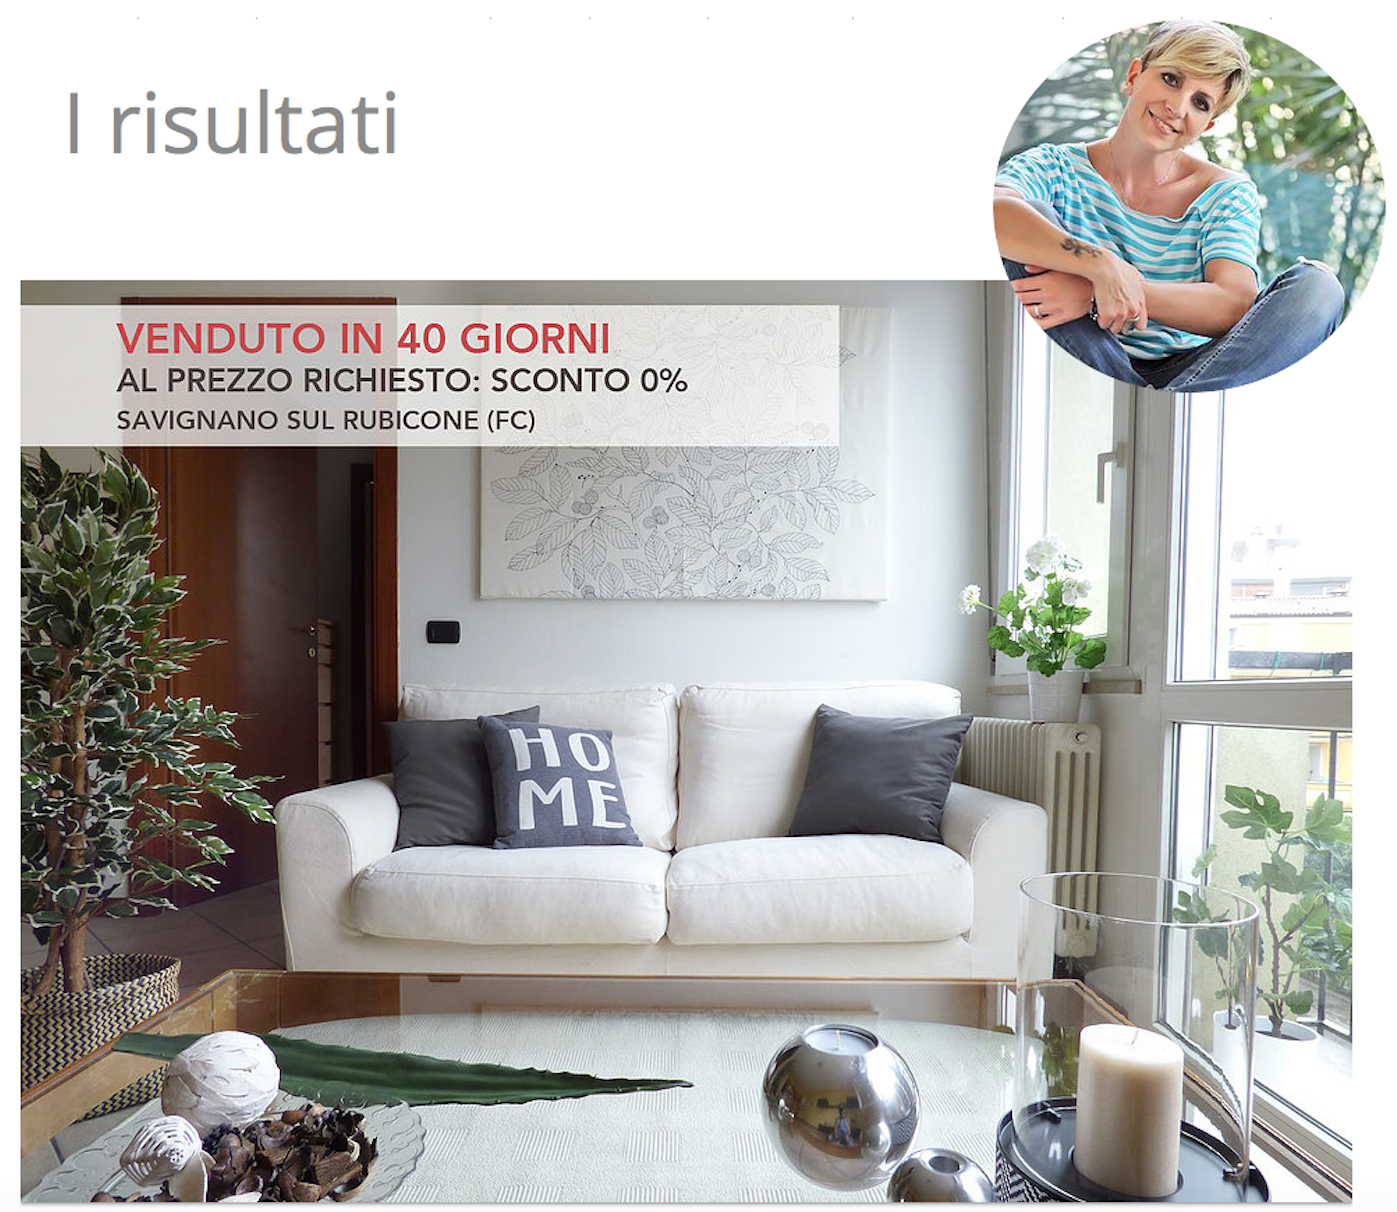 HOME STAGING ROMAGNA MIRNA CASADEI IMMOBILIARE REAL ESTATE20.png